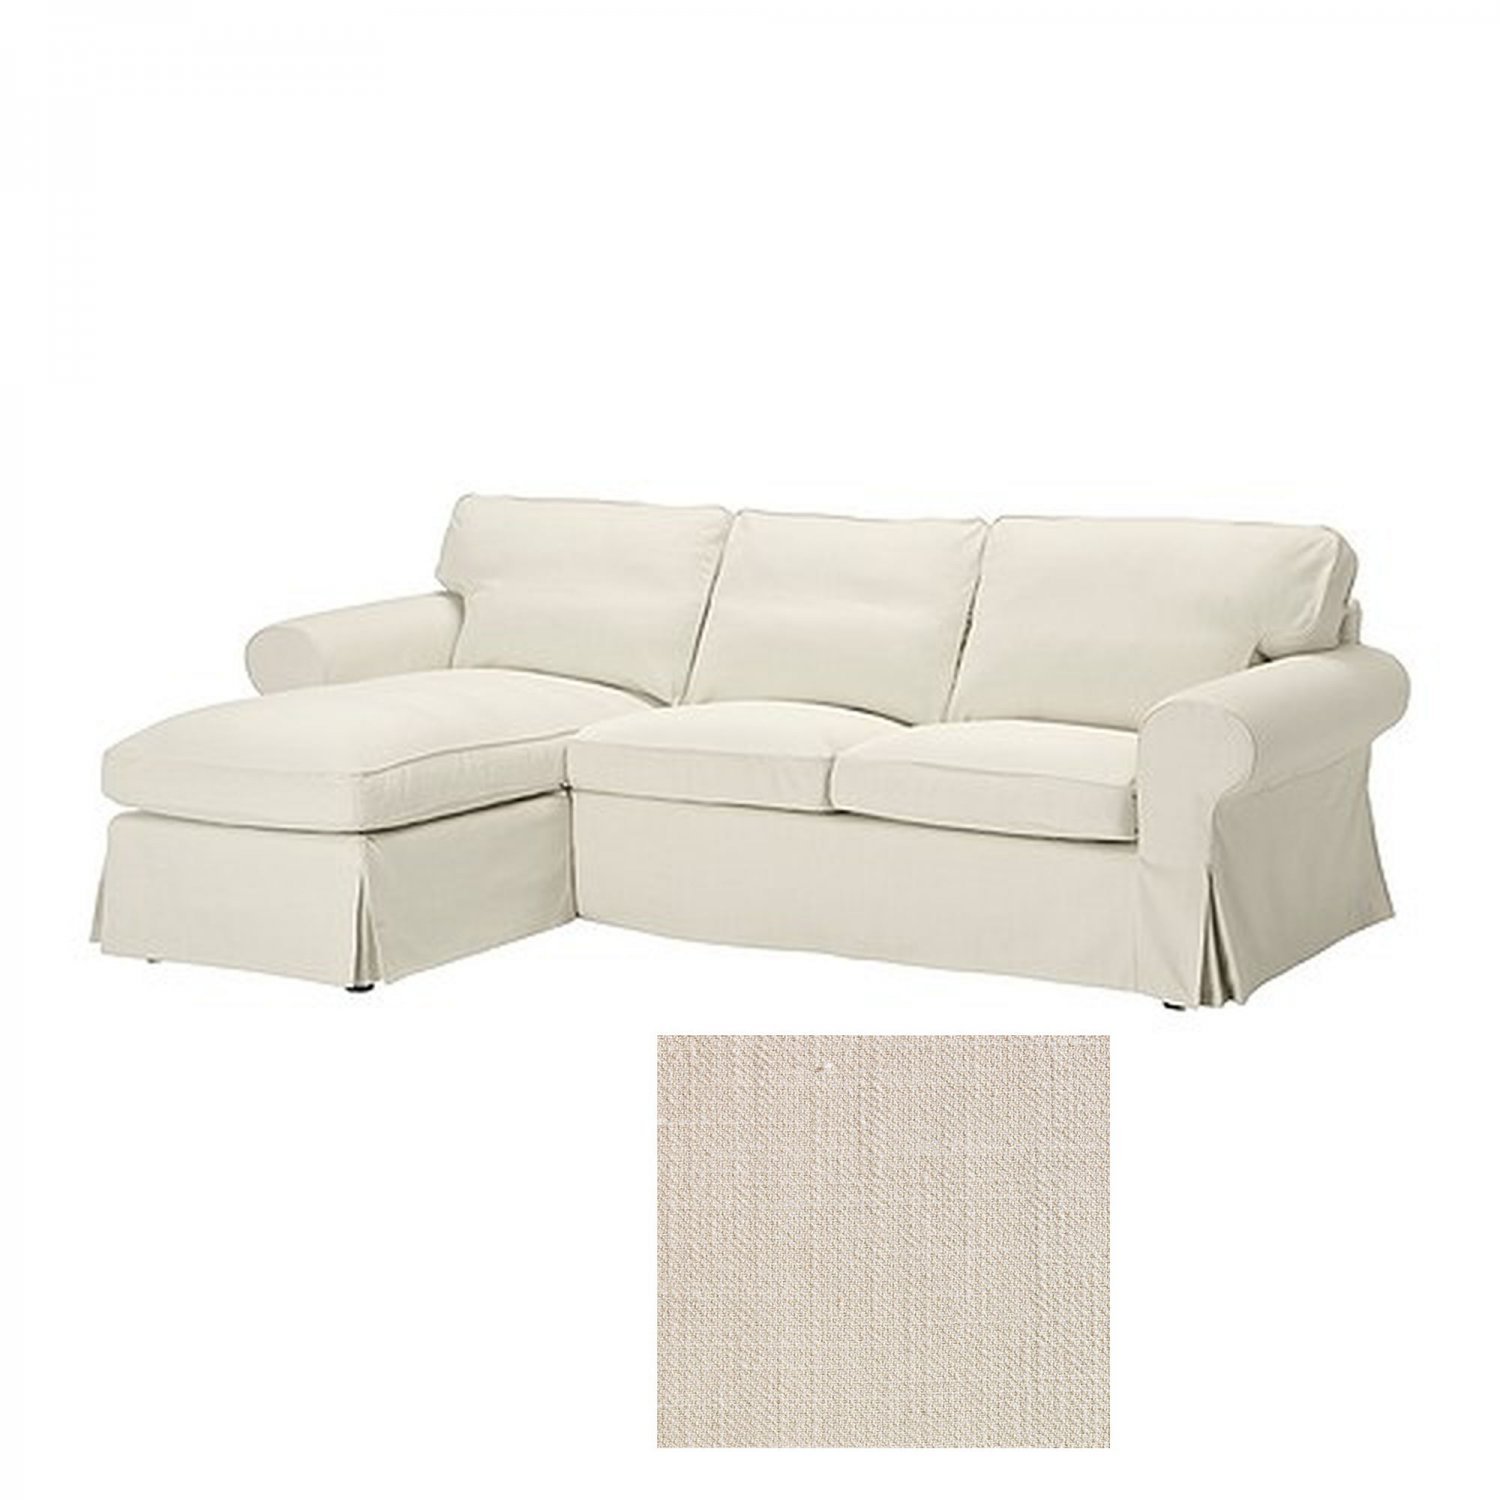 IKEA EKTORP Loveseat sofa with Chaise COVER Slipcover ...